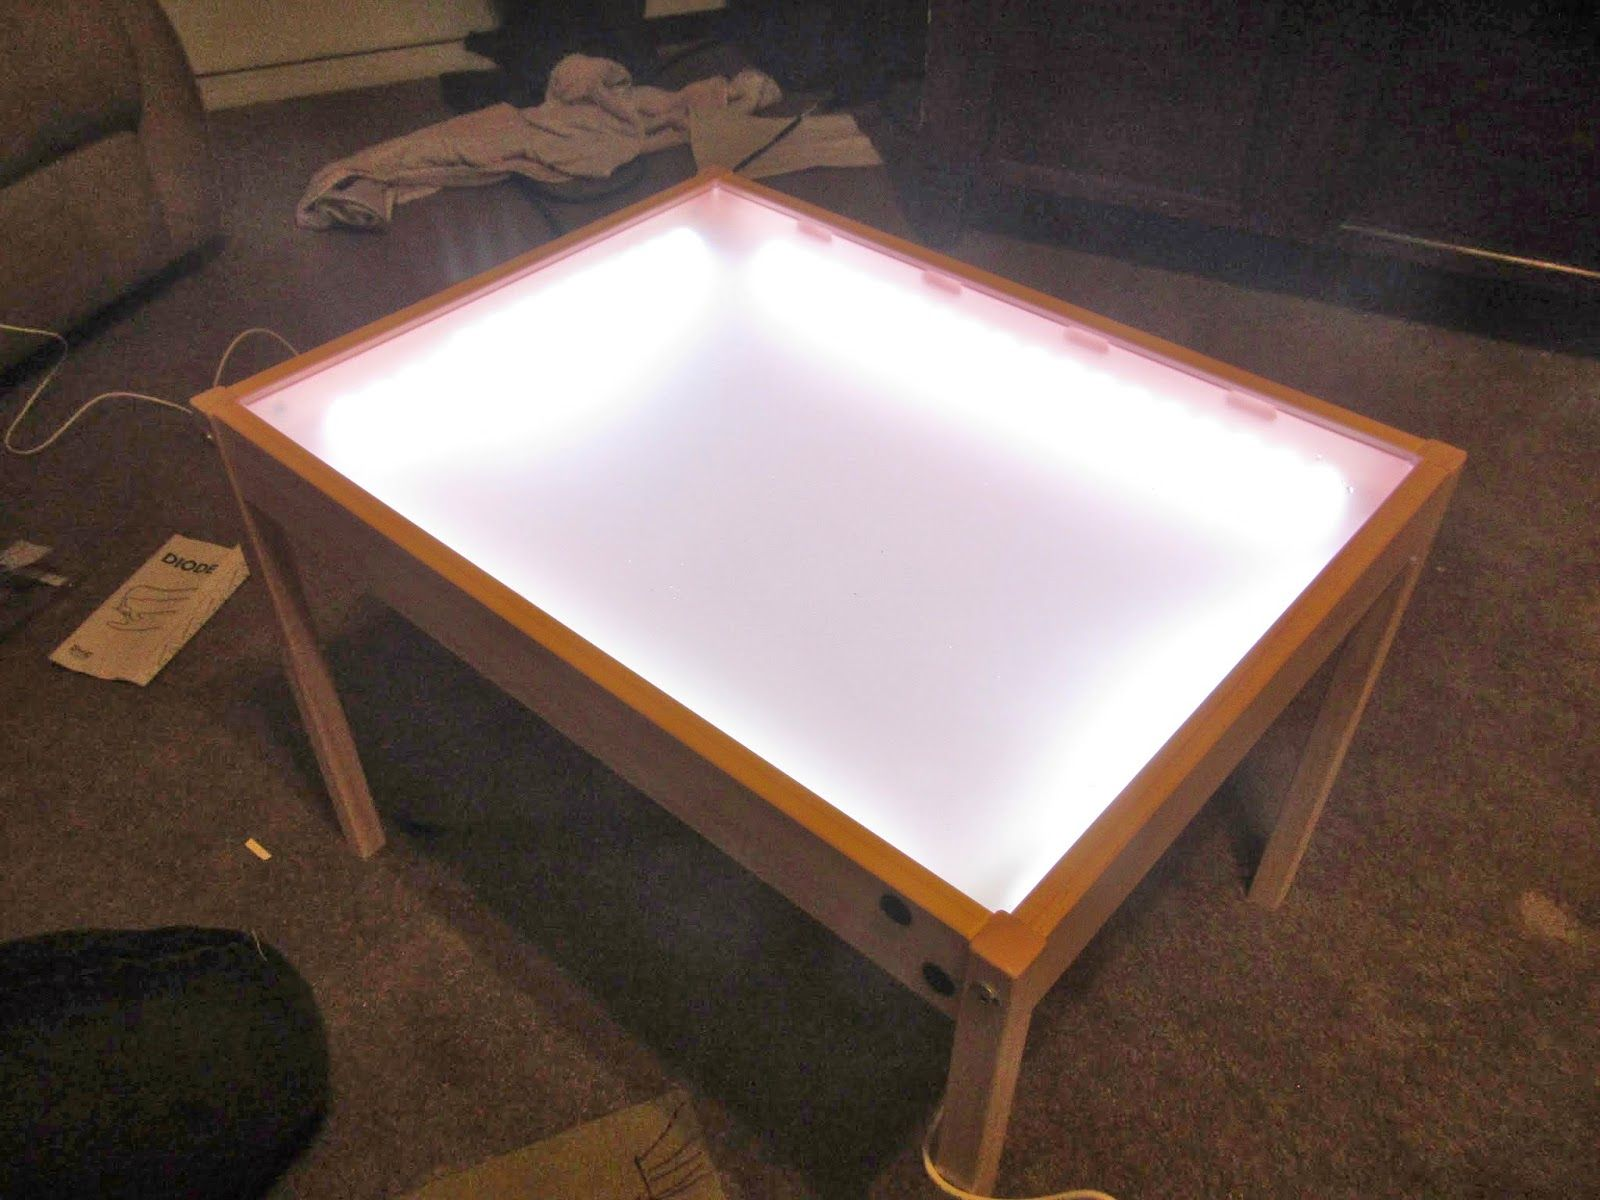 Ikea Vika Blecket Table Top Intigrated Lightbox Office Furniture Equipment 1 Ikea Drafting Table Art Table